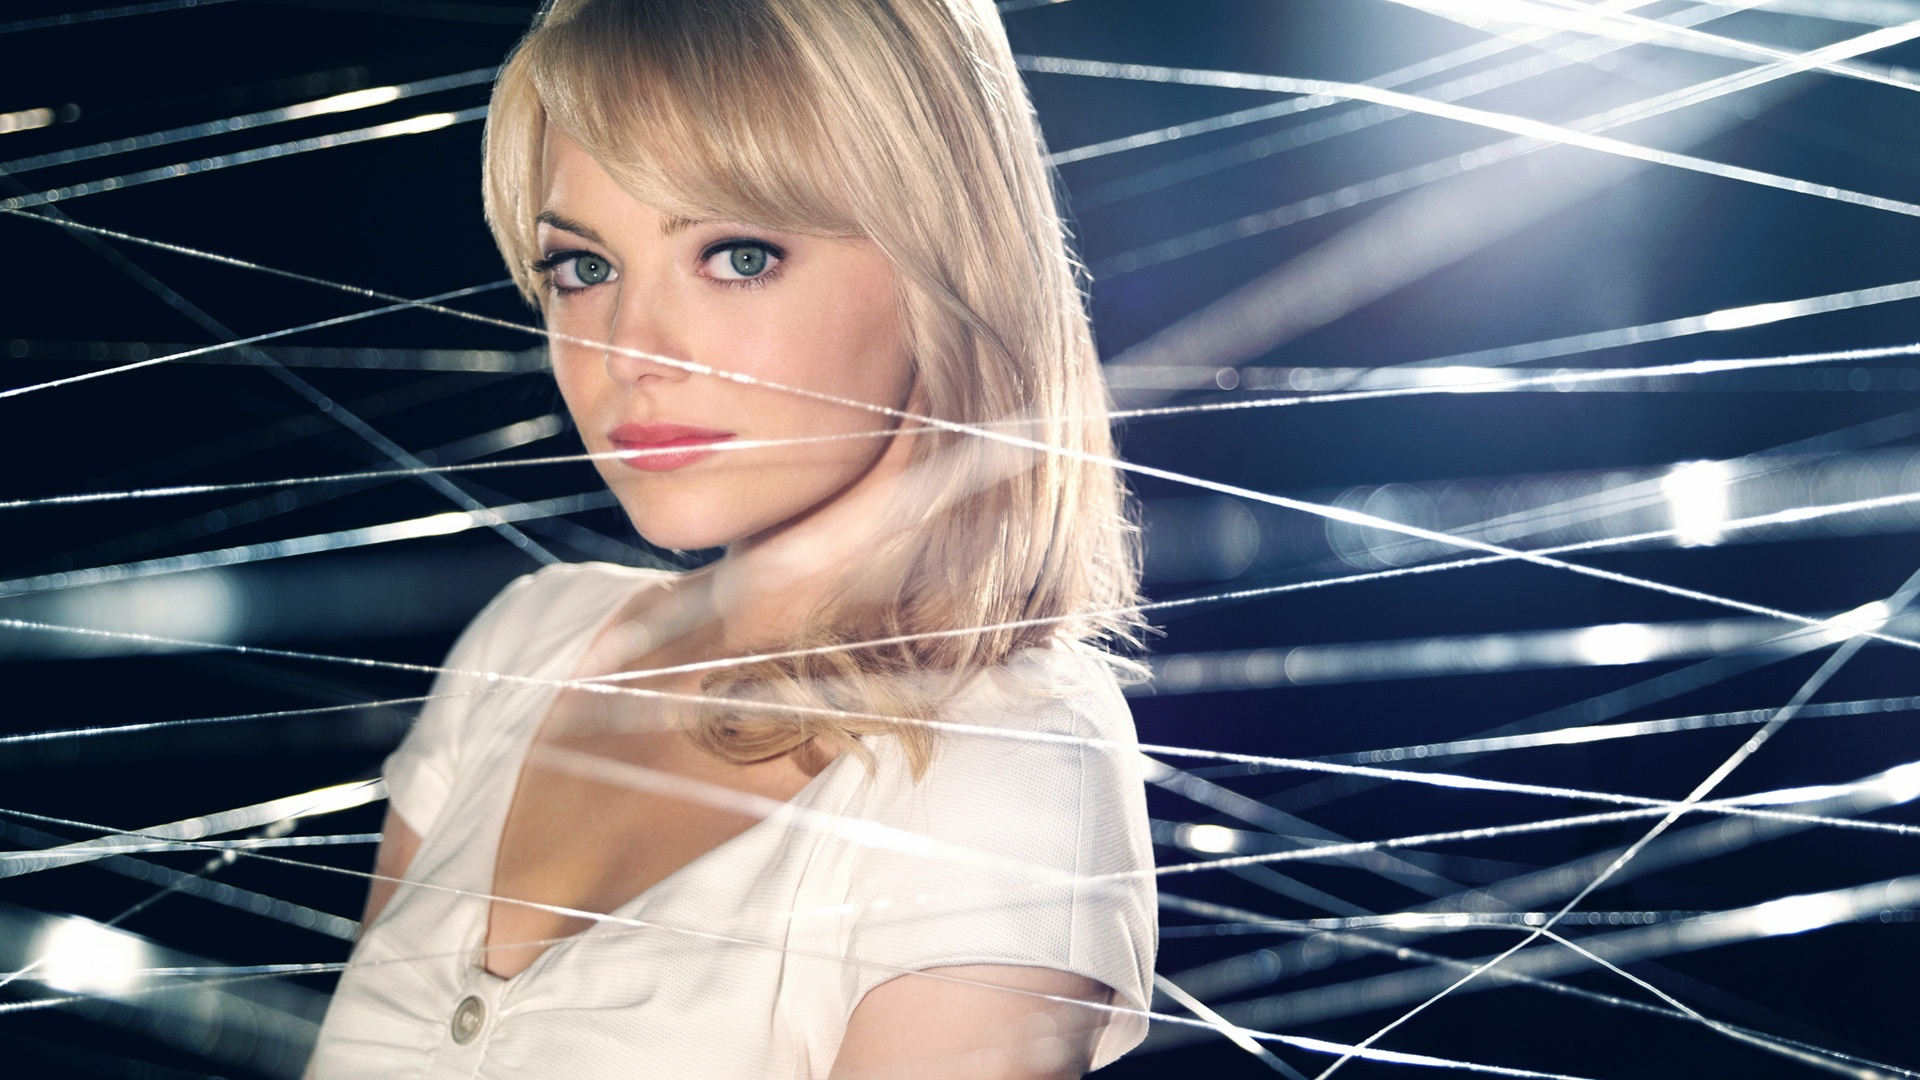 emma stone wallpapers hd a5